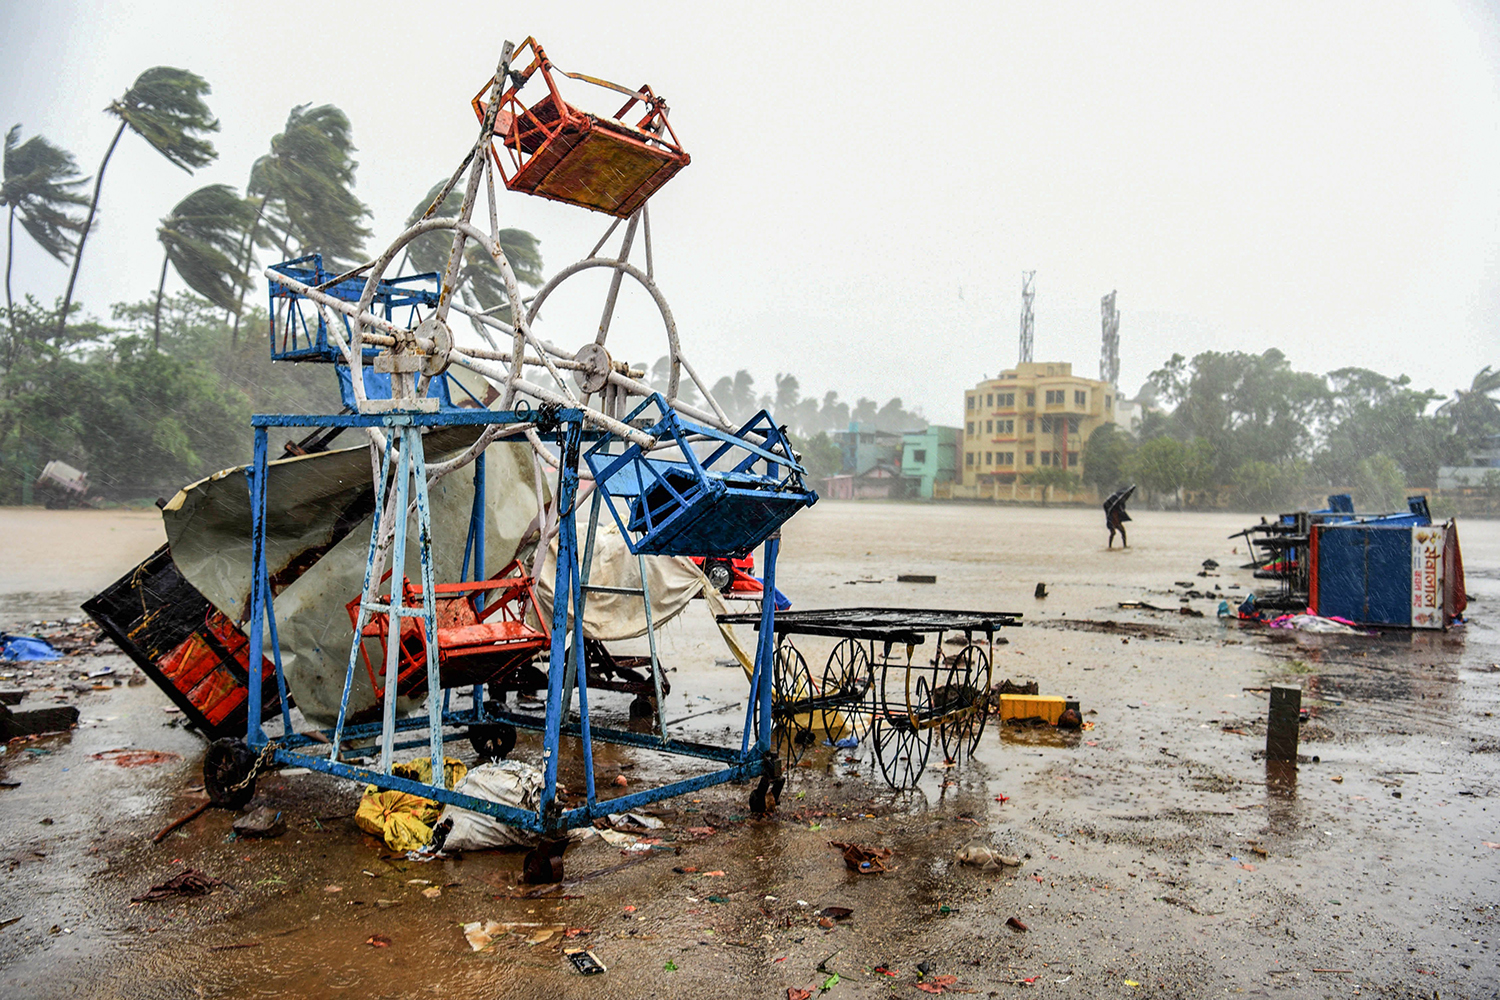 A man holding an umbrella walks past a small, damaged Ferris wheel in Alibag, India, in the Raigad District on June 3 following Cyclone Nisarga's landfall along India's western coast. STR/AFP via Getty Images